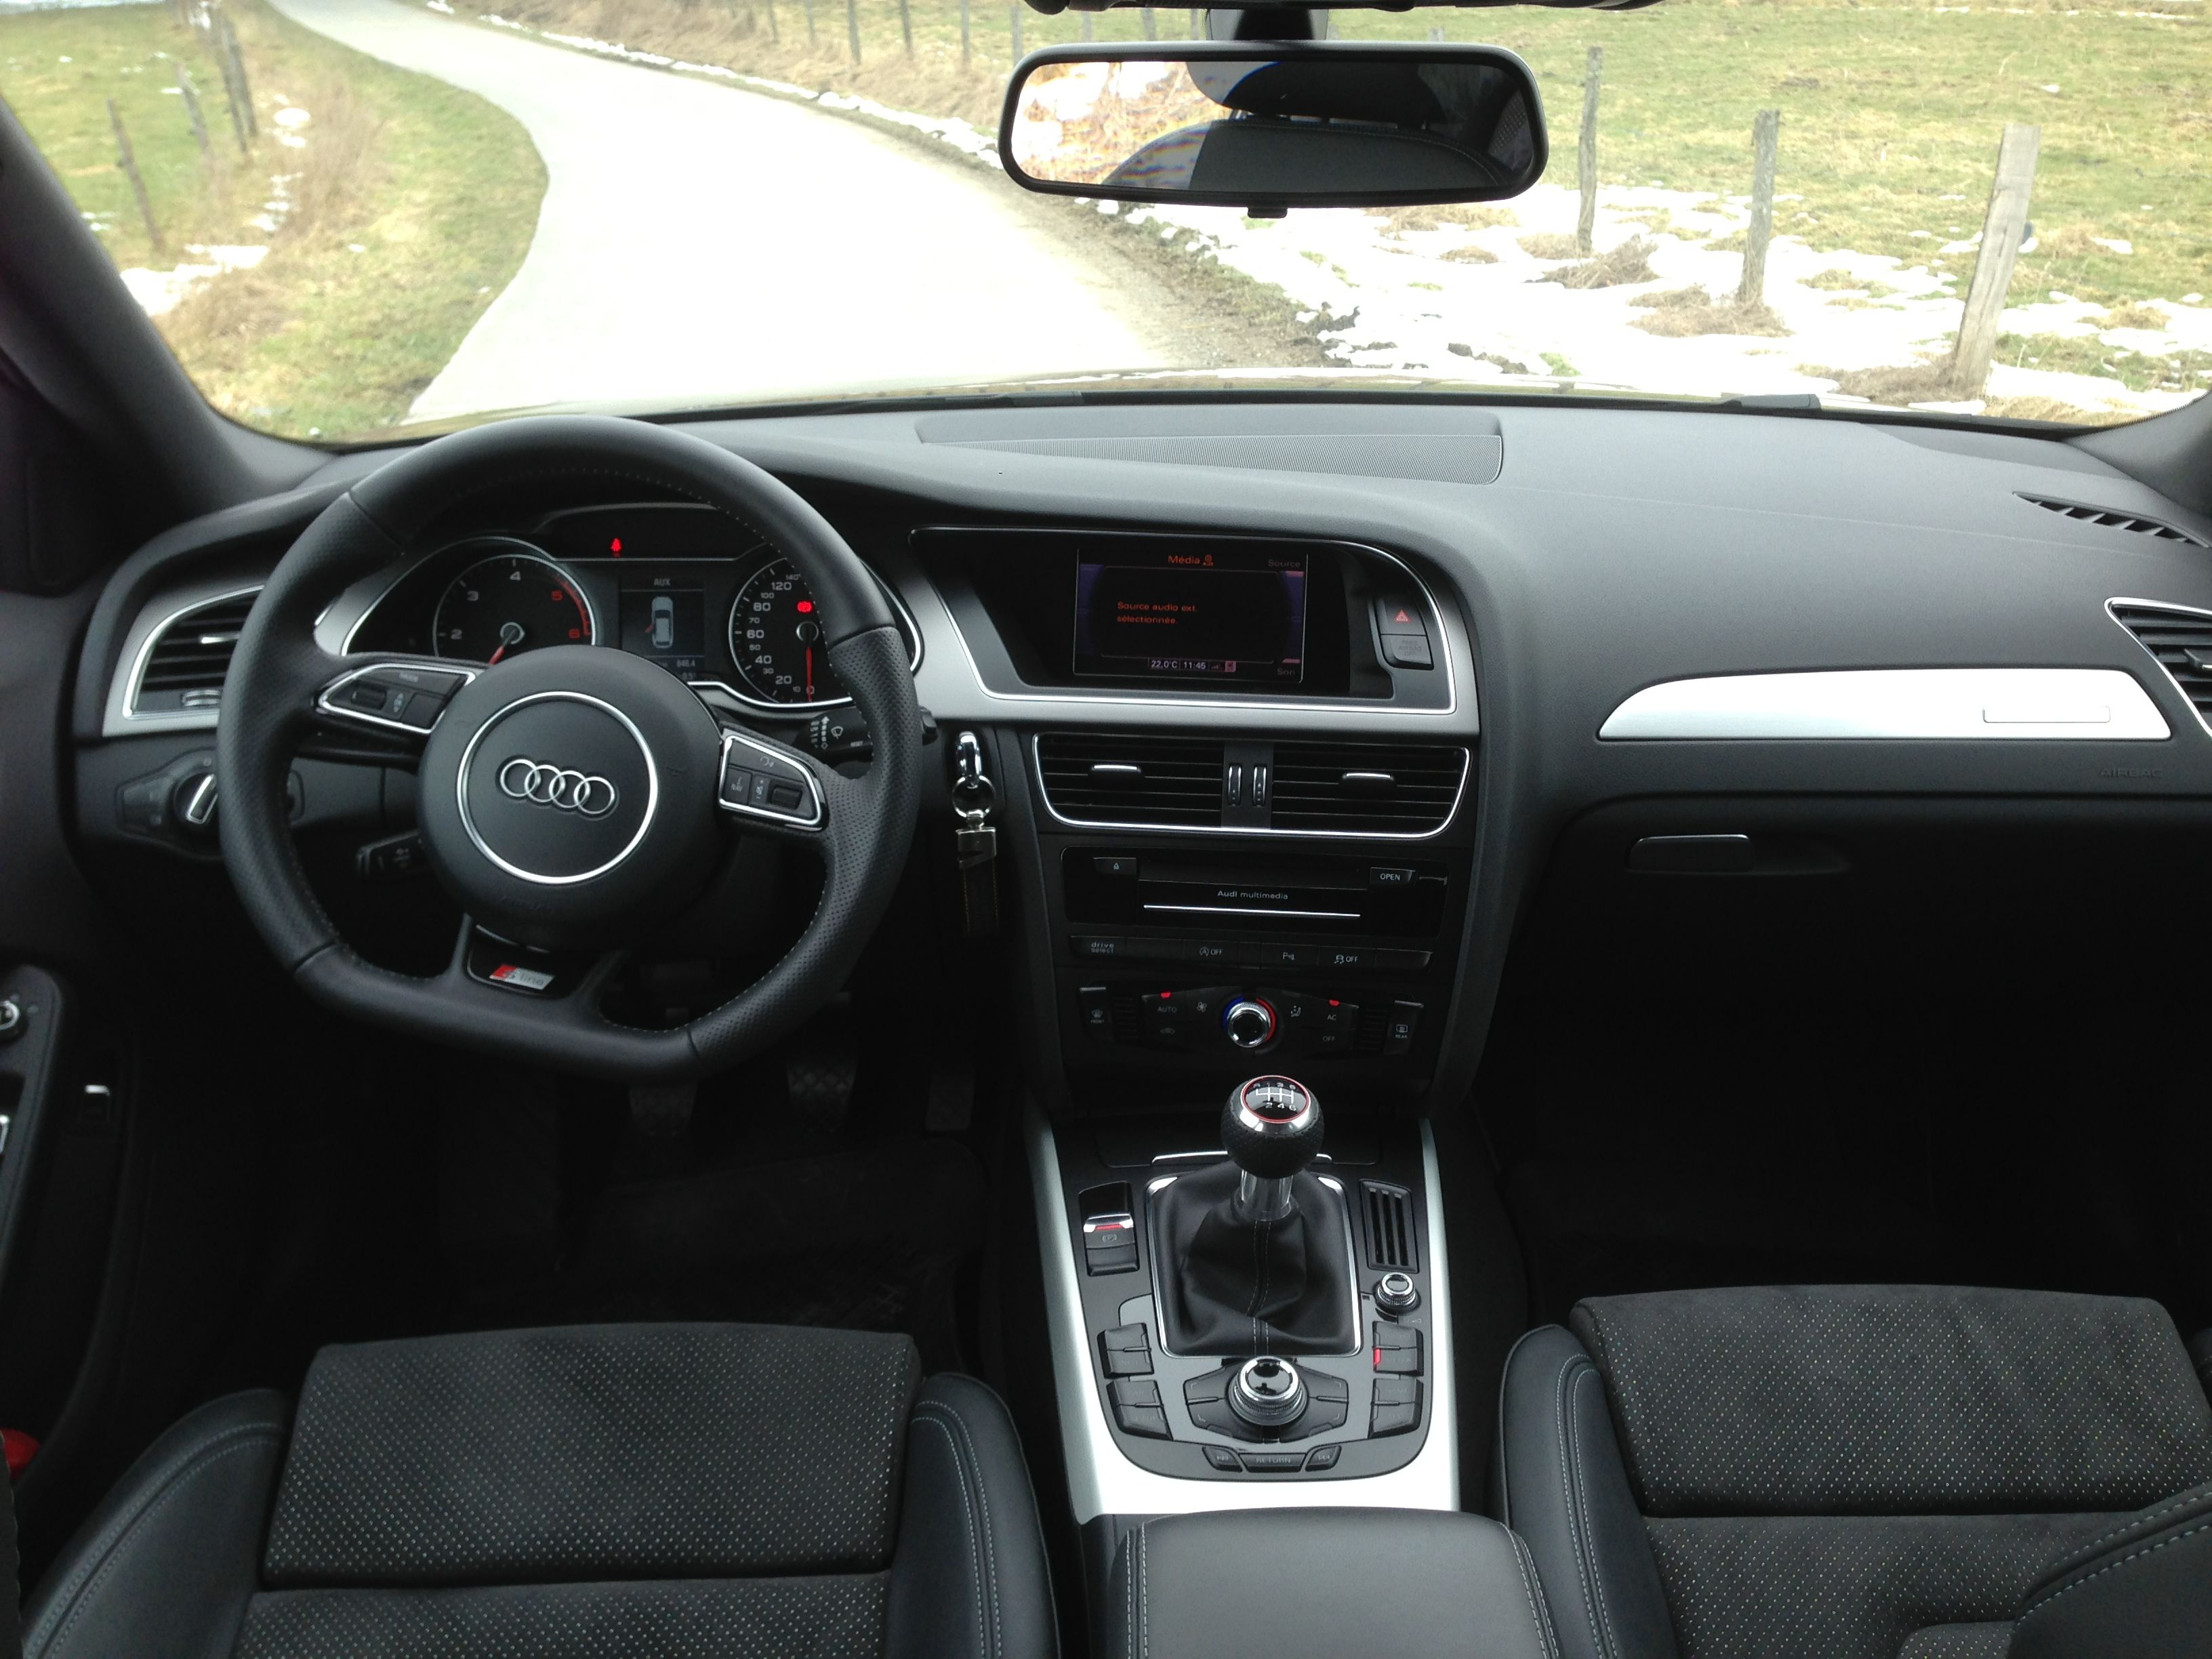 4 Audi A4 Avant SLine 2013 Interior - Gsiders.co